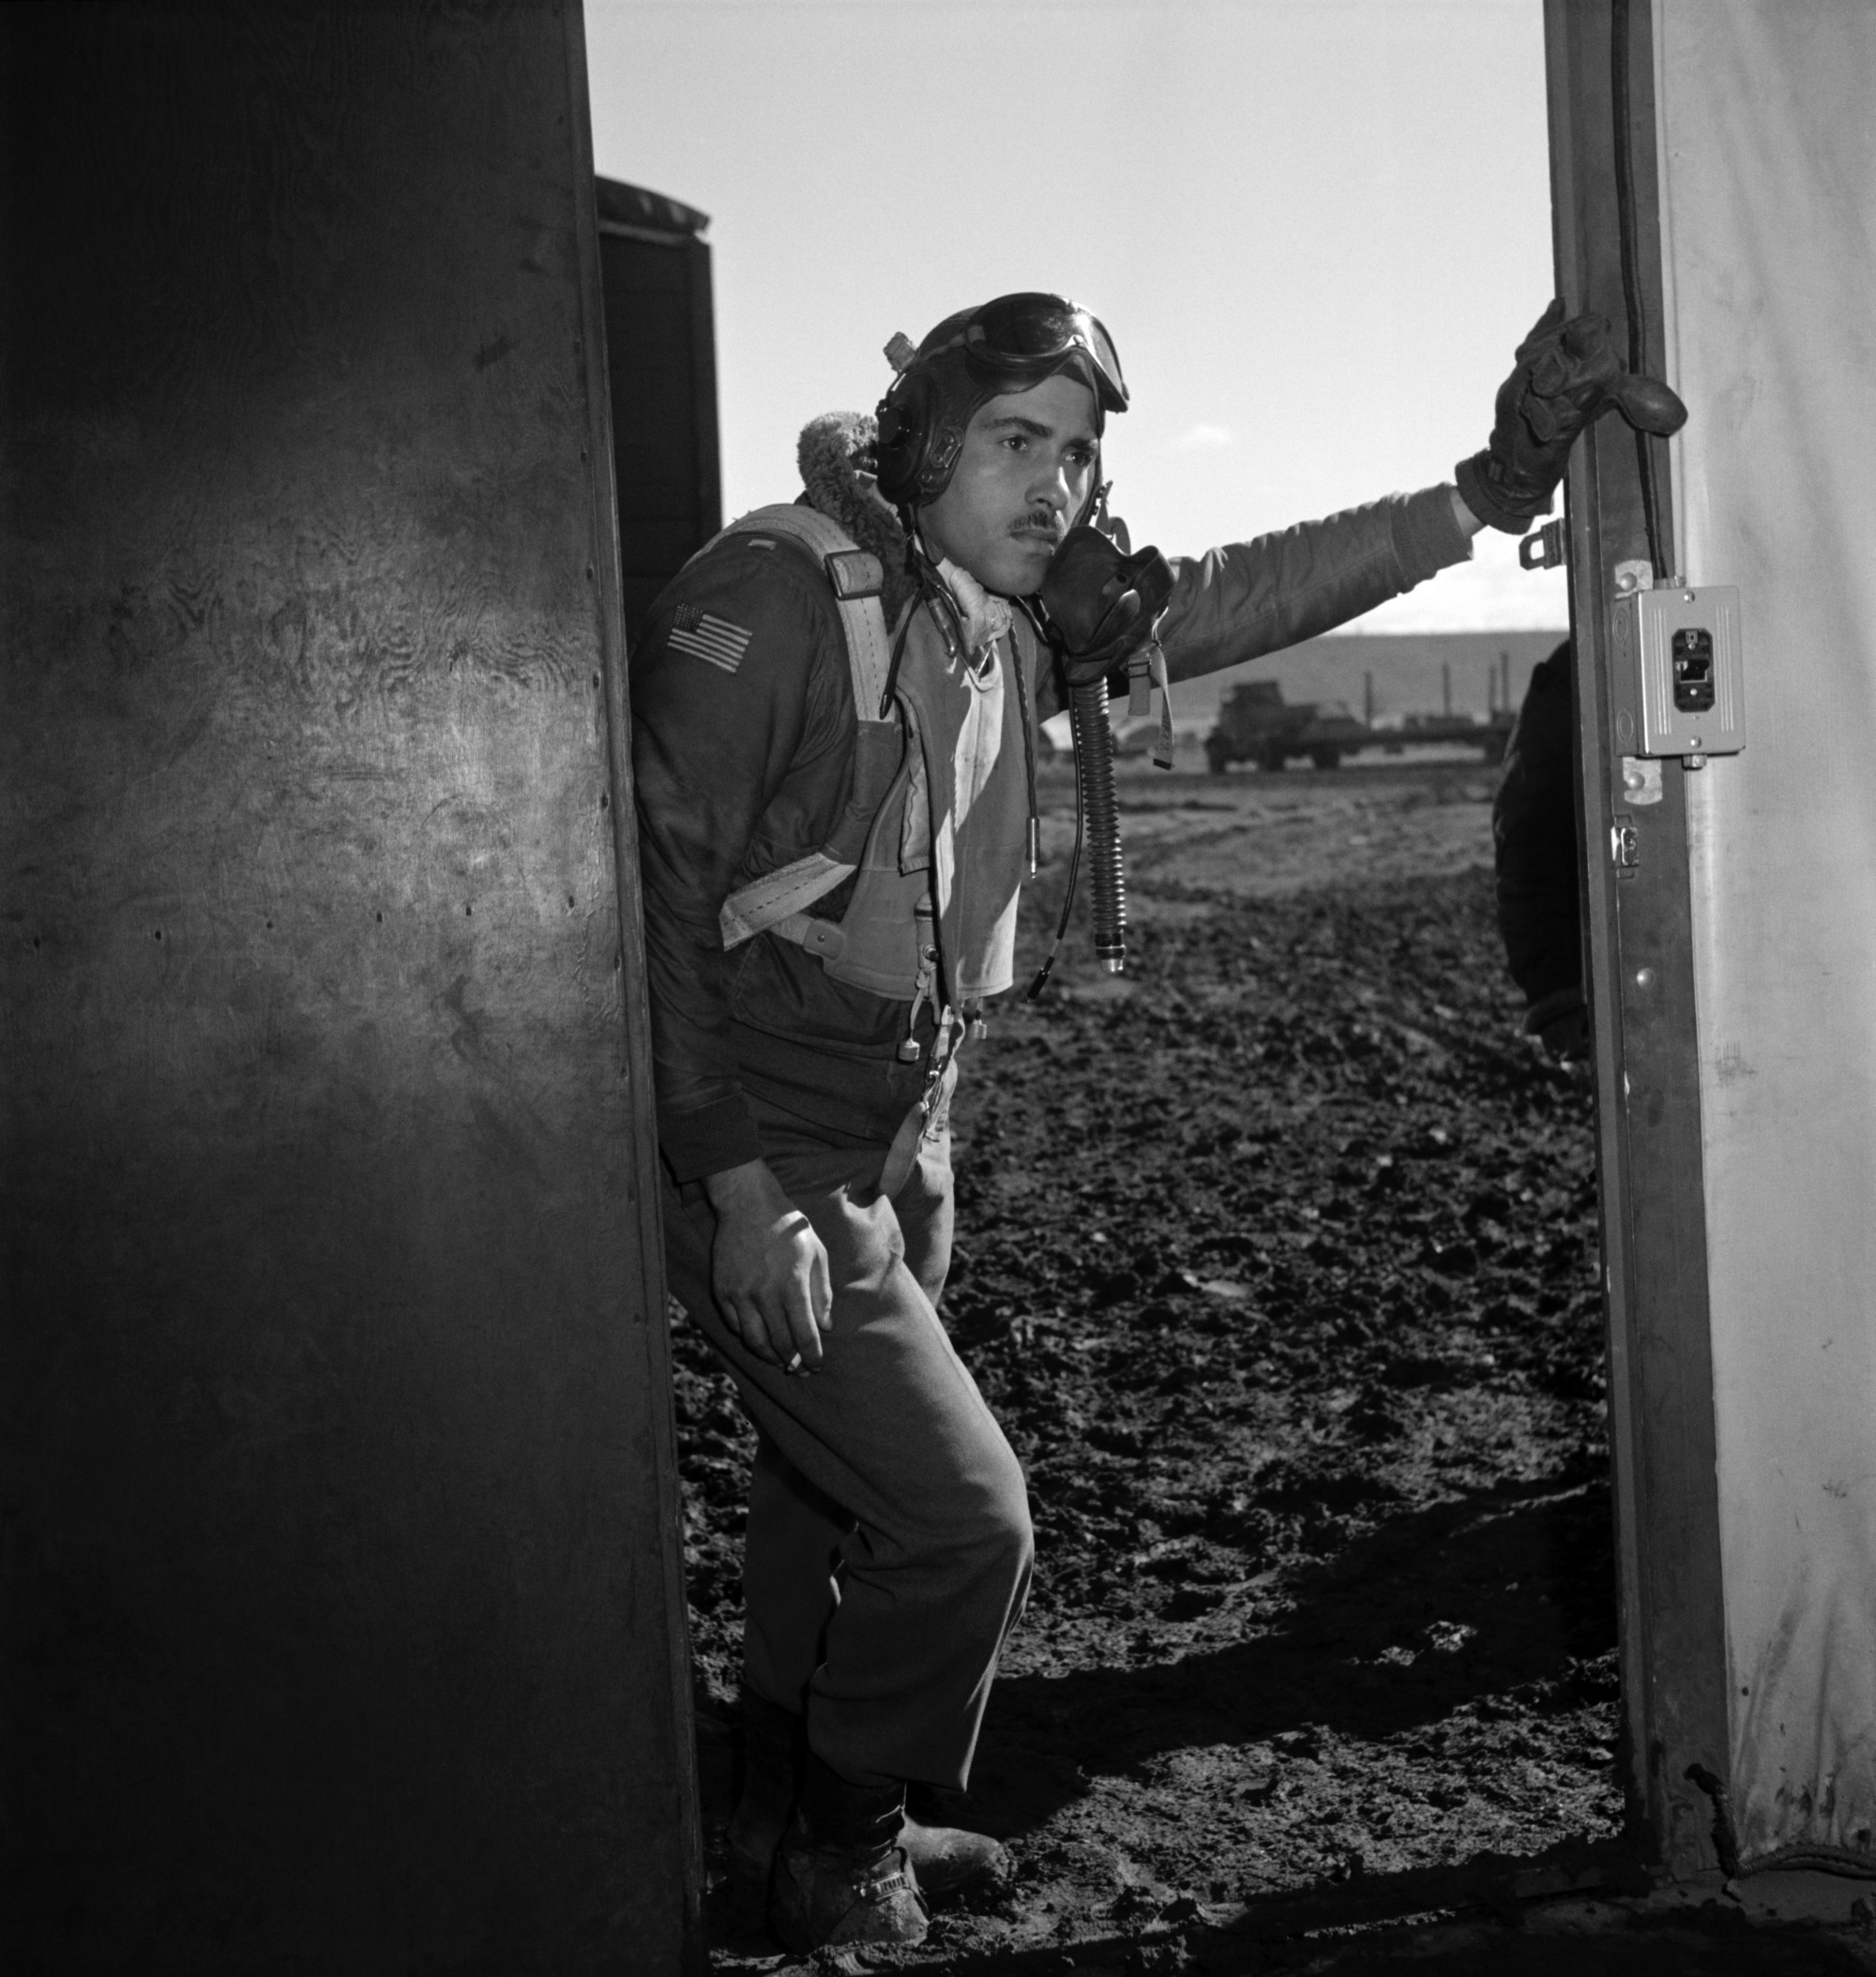 These photos of the Tuskegee Airmen show cool dedication in the face of wartime segregation